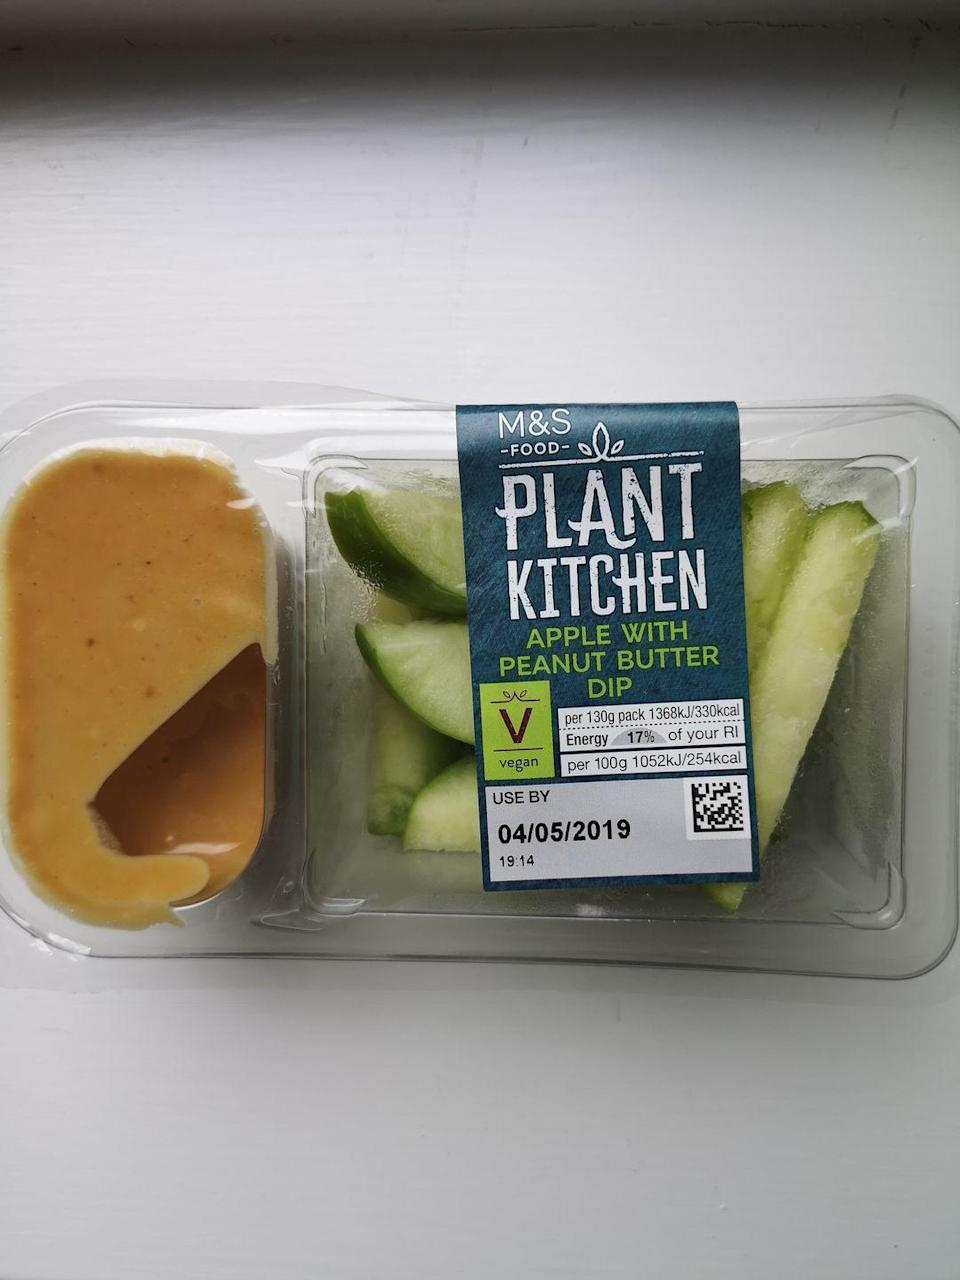 """<p><strong>Price: </strong>£1.50</p><p><strong>Why?</strong> 'You can't go wrong with sliced apple and peanut butter, and this perfectly portioned package is great for a picnic. Combining carbohydrates with a source of protein and healthy fats helps to slow down the release of sugars into your blood stream meaning you'll feel fuller for longer.'</p><p><a class=""""link rapid-noclick-resp"""" href=""""https://go.redirectingat.com?id=127X1599956&url=https%3A%2F%2Fwww.marksandspencer.com%2Fl%2Ffood-to-order%2Fpicnic-food-ideas&sref=https%3A%2F%2Fwww.redonline.co.uk%2Ffood%2Fg32685467%2Fhealthy-picnic-foods-m-and-s%2F"""" rel=""""nofollow noopener"""" target=""""_blank"""" data-ylk=""""slk:SHOP NOW"""">SHOP NOW</a></p>"""